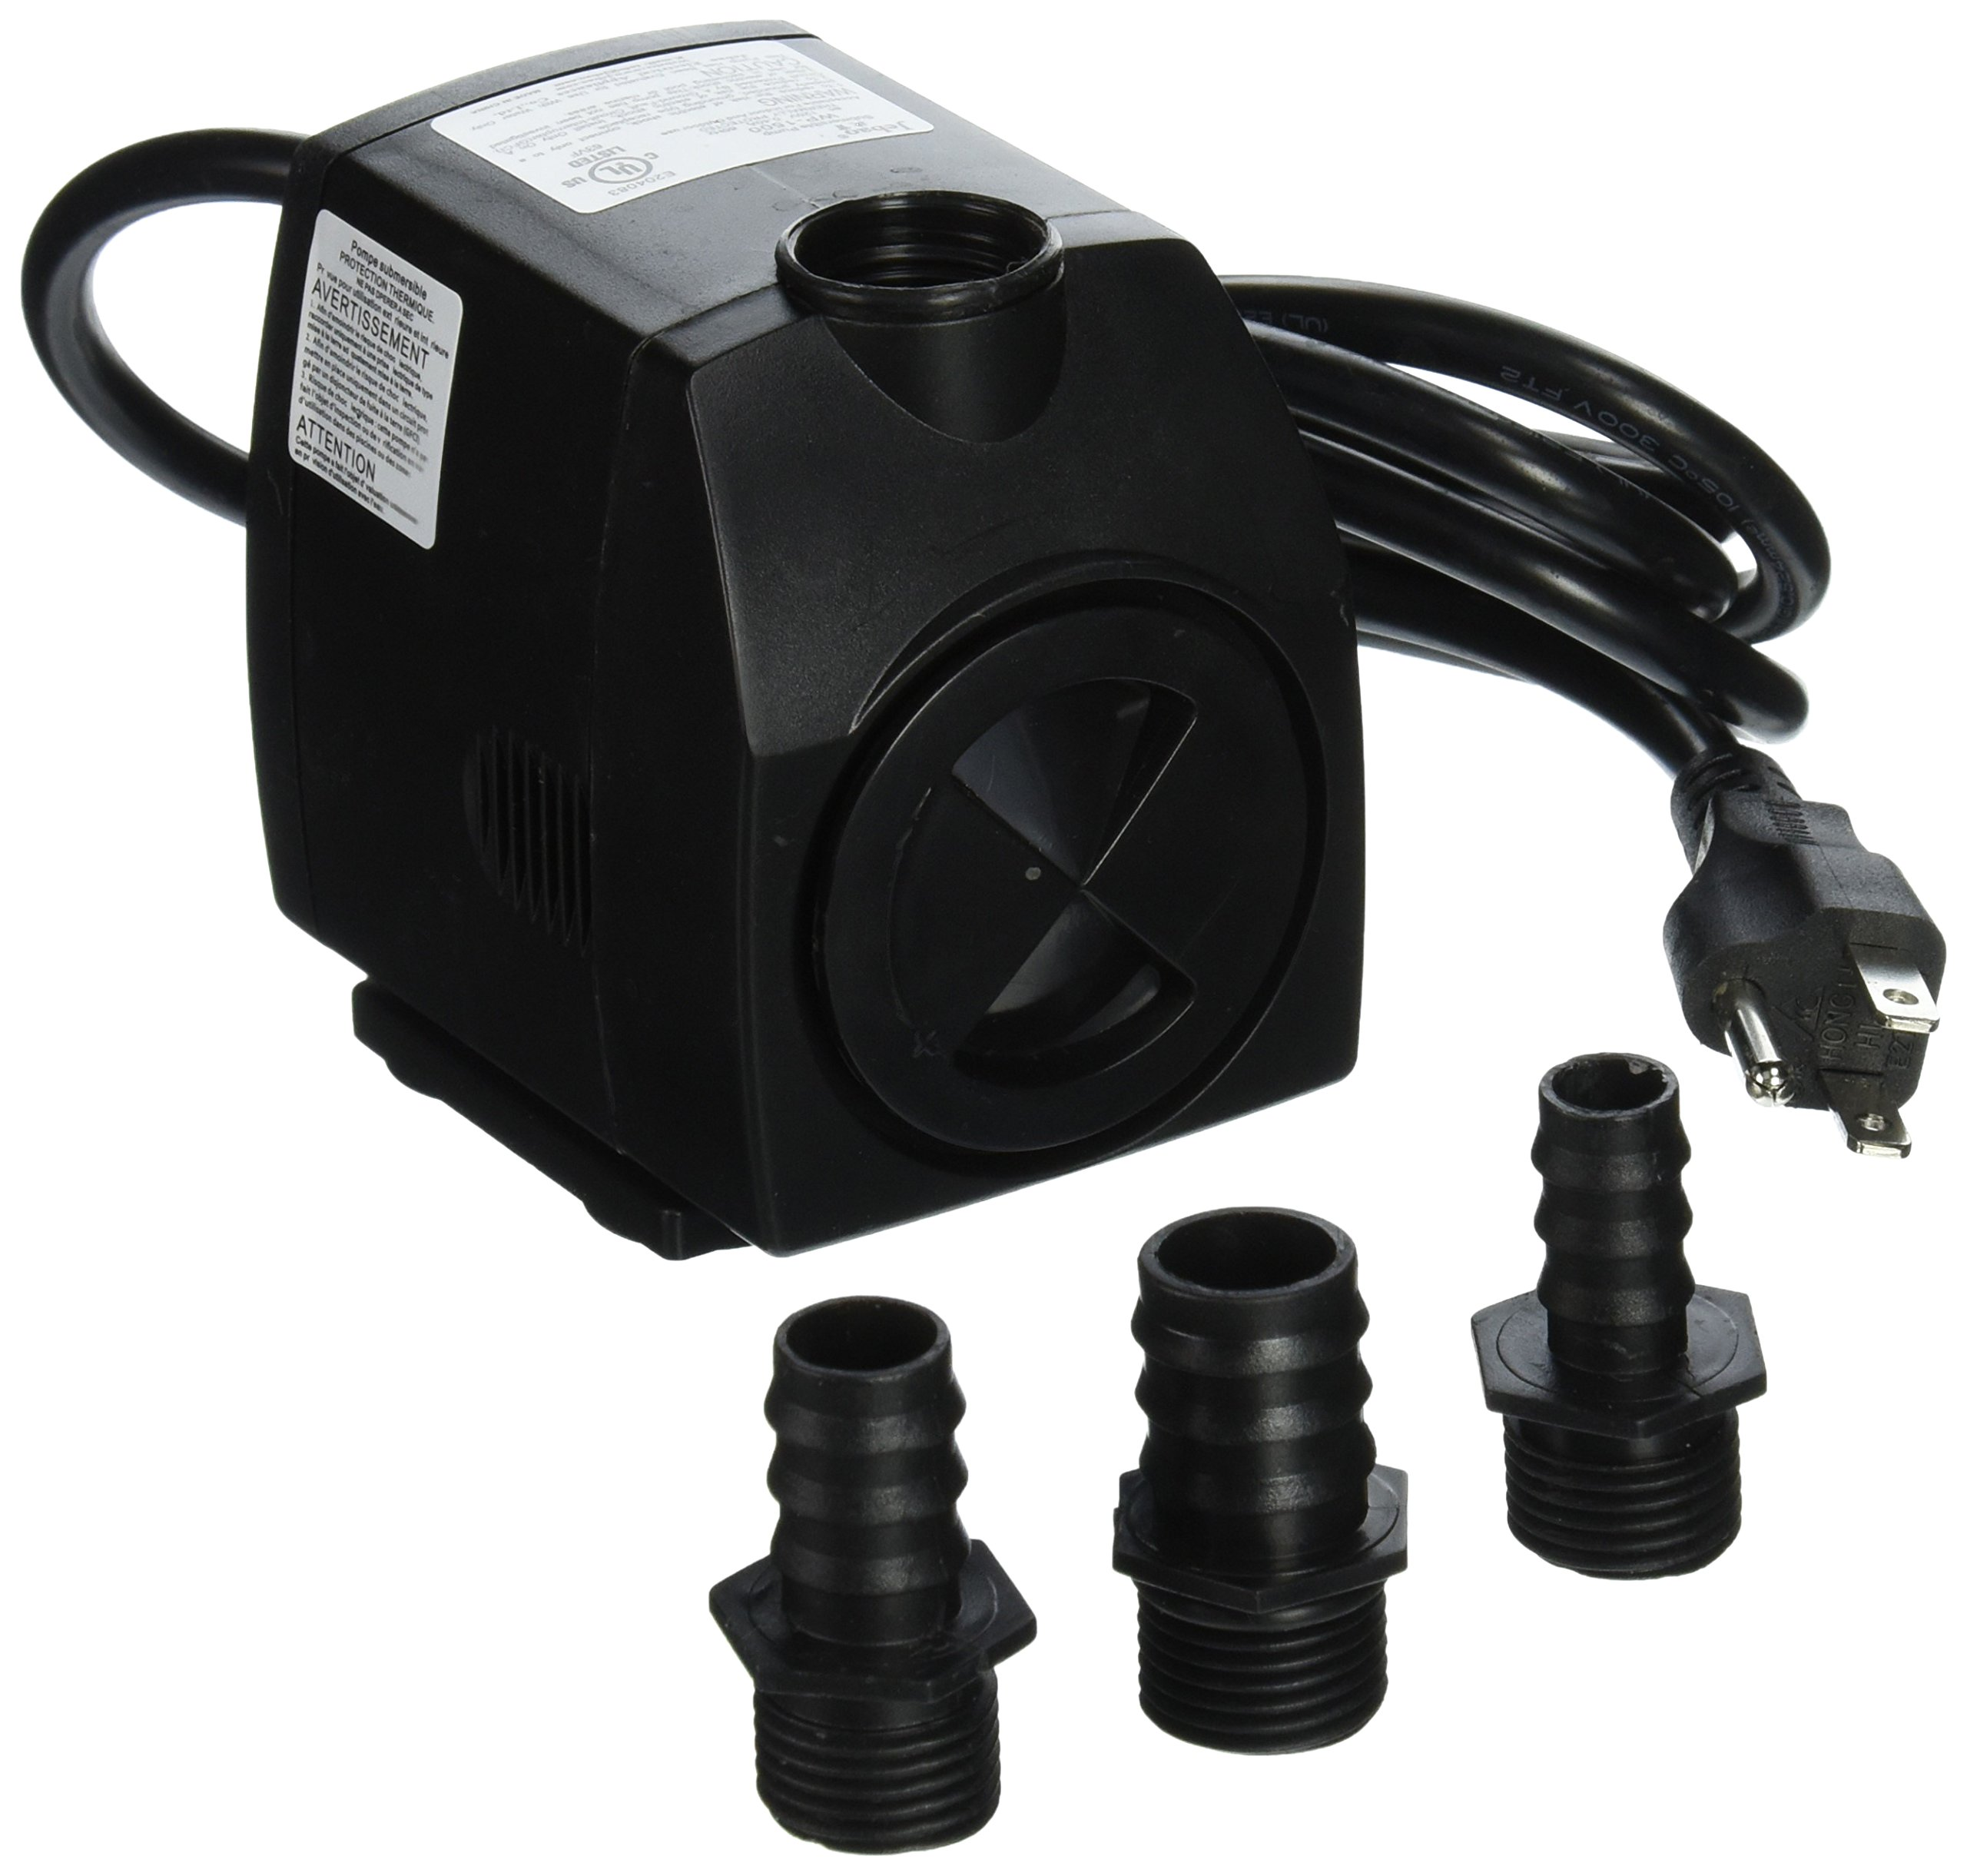 Jebao WP1500 Submersible, Hydroponics, Aquaponics, Fountain Pump 400gph, 25w